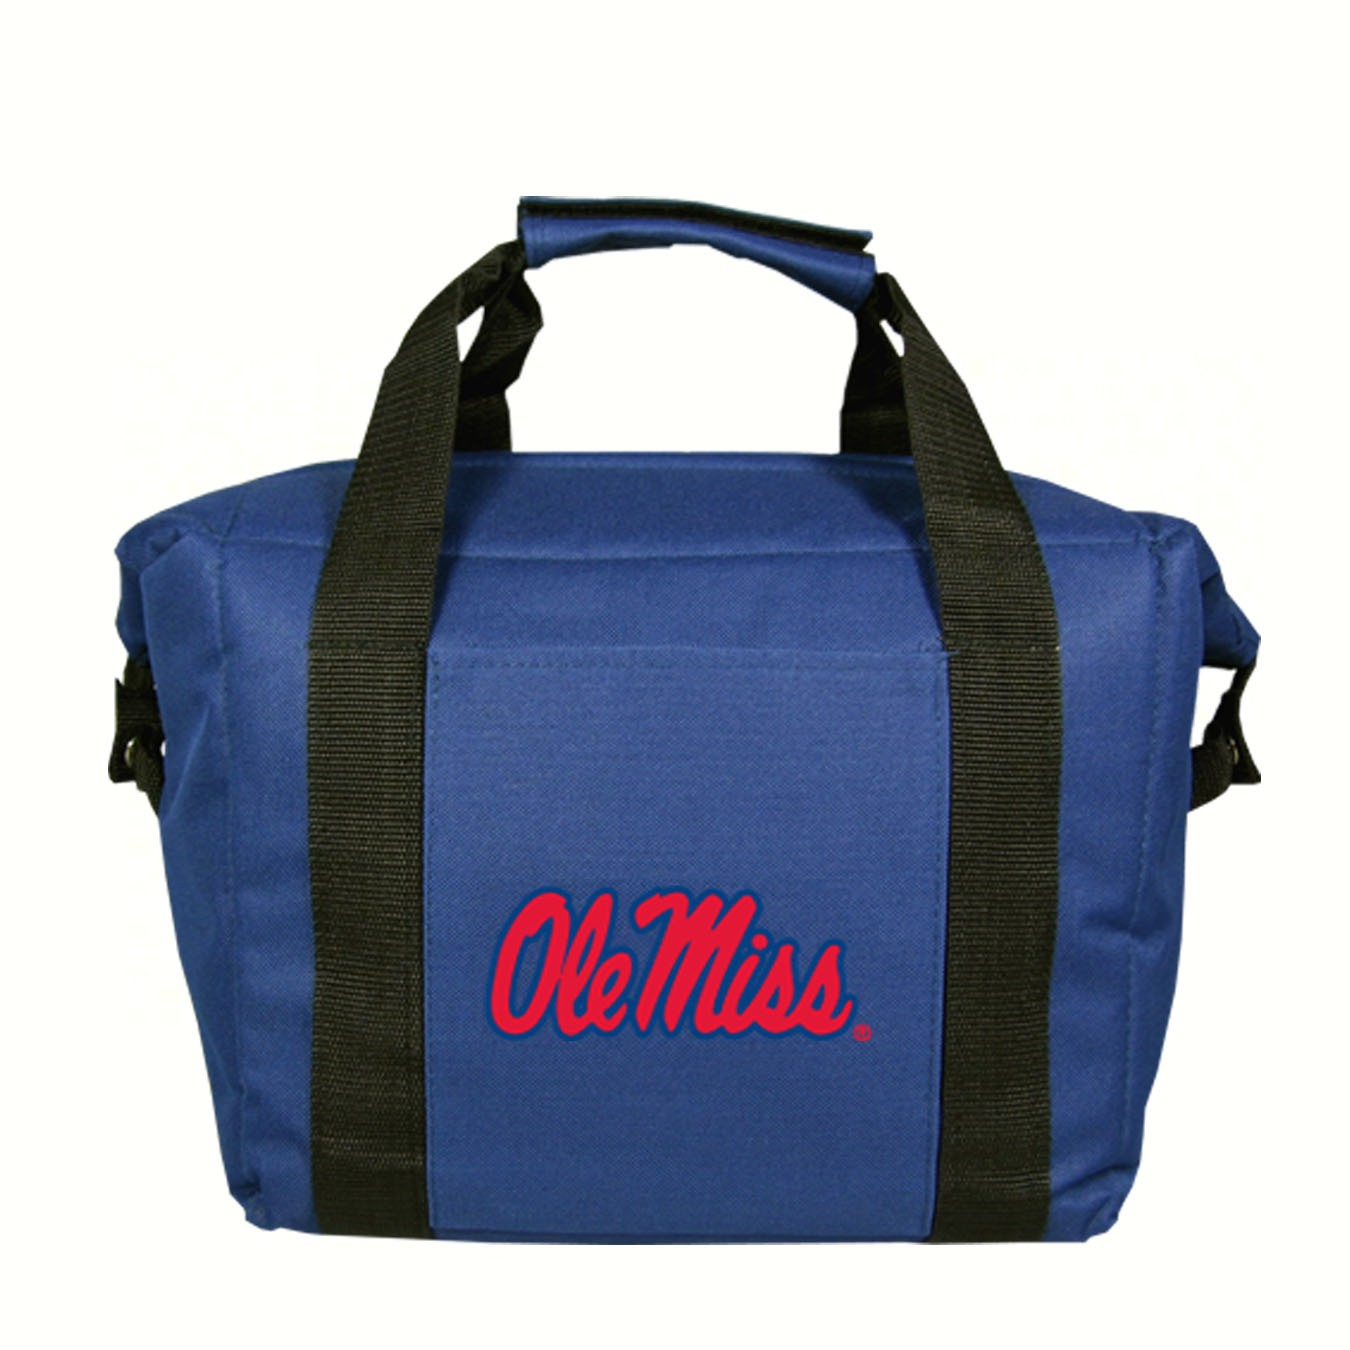 Kooler Bag - Ole Miss Rebels (Holds a 12 pack)